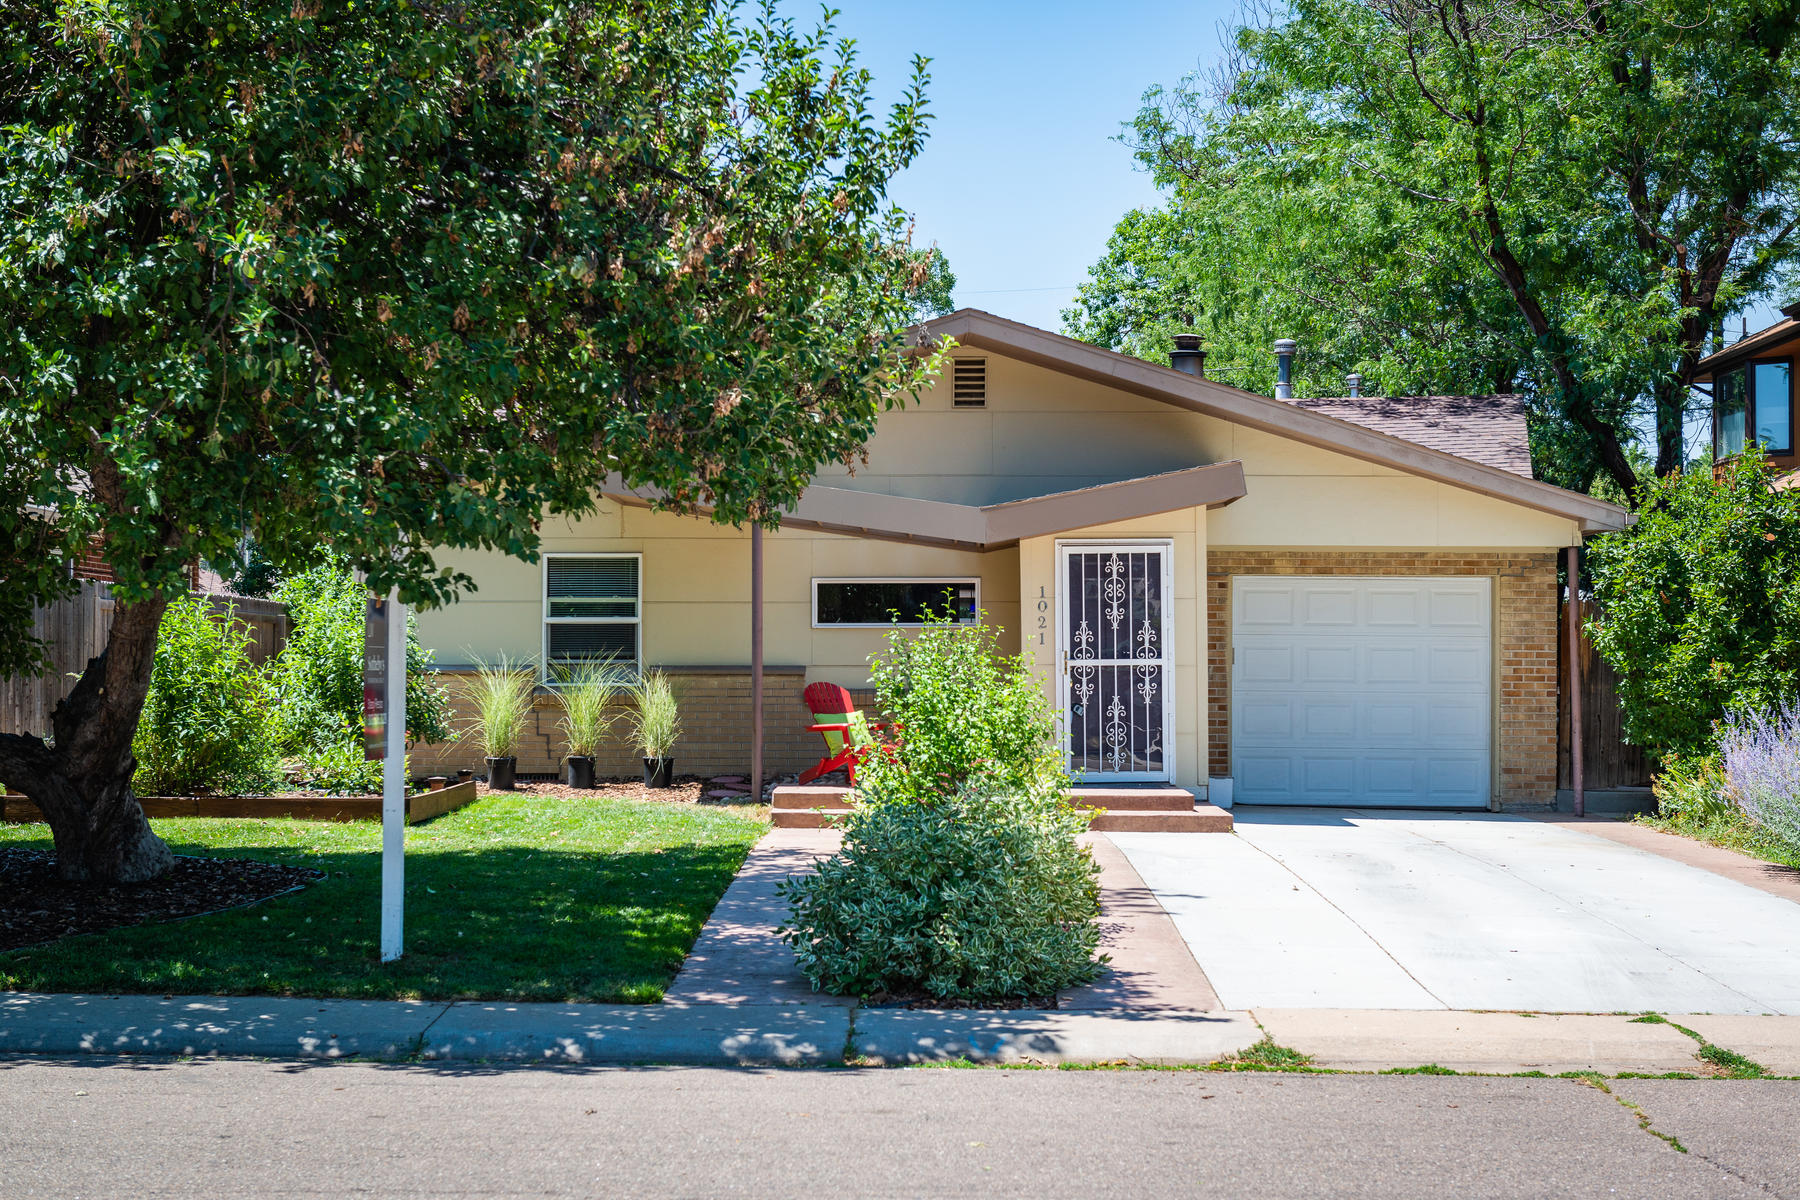 Single Family Home for Active at 1021 Locust Street 1021 Locust Street Denver, Colorado 80220 United States